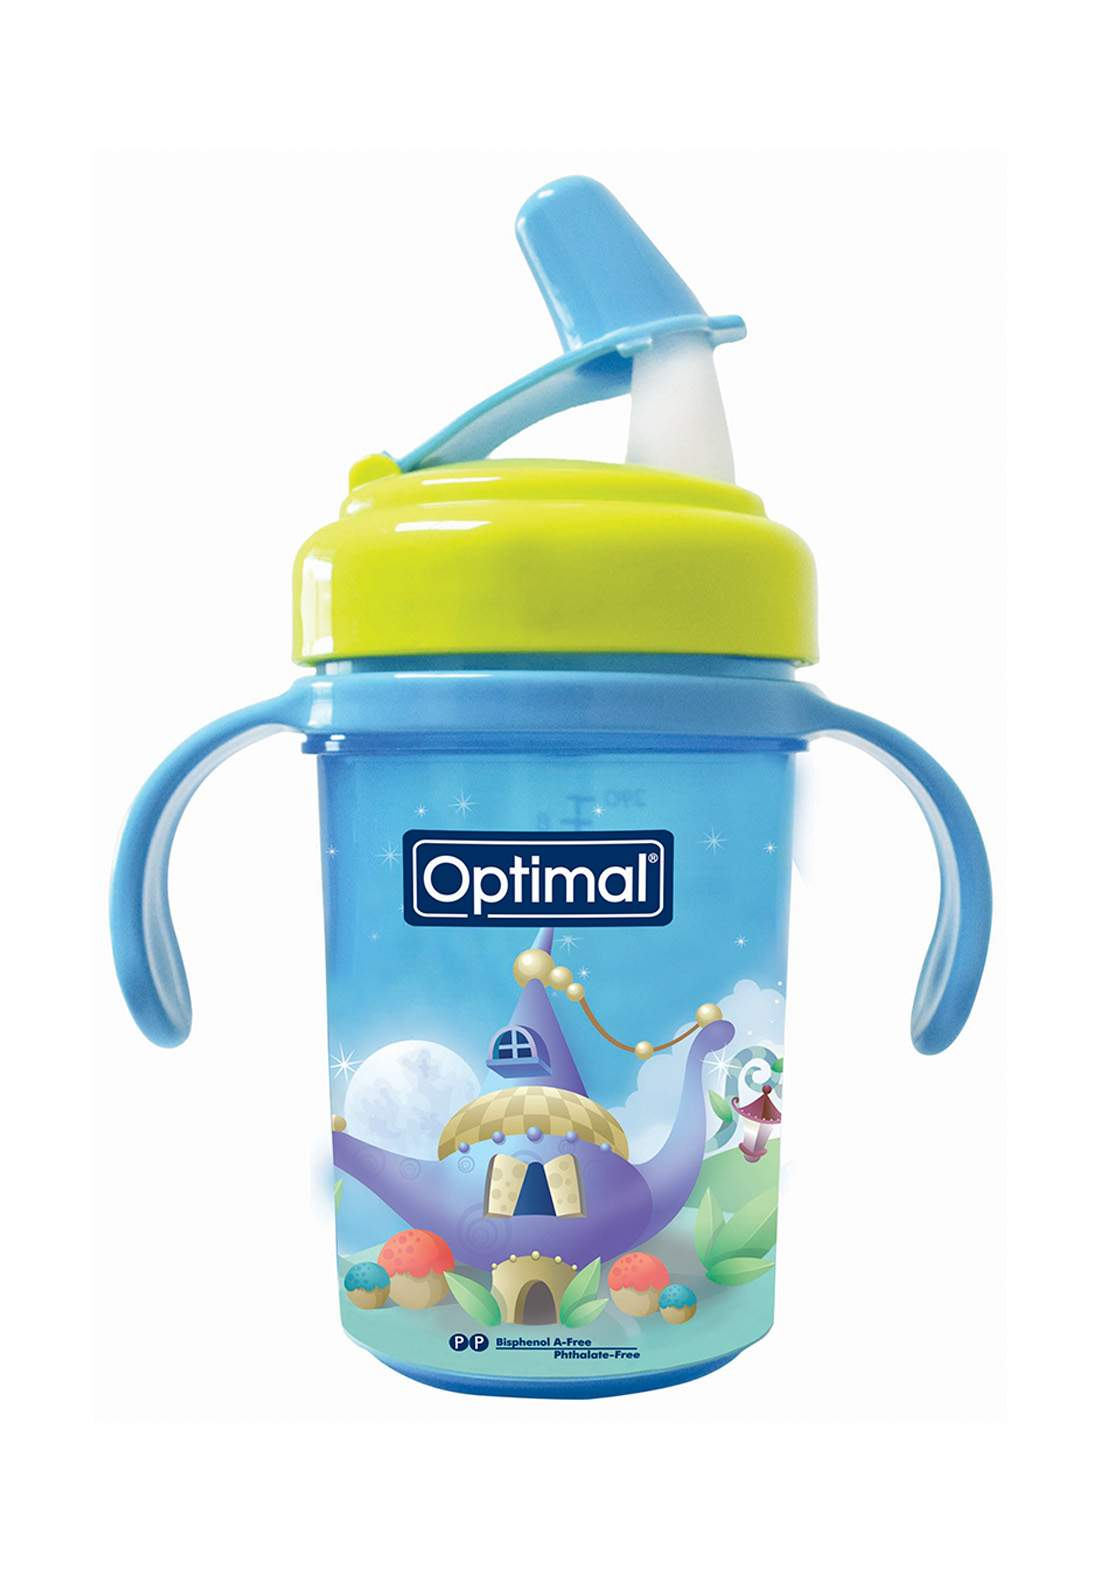 Optimal Silicone Spout Cup With Handle  كوب للأطفال